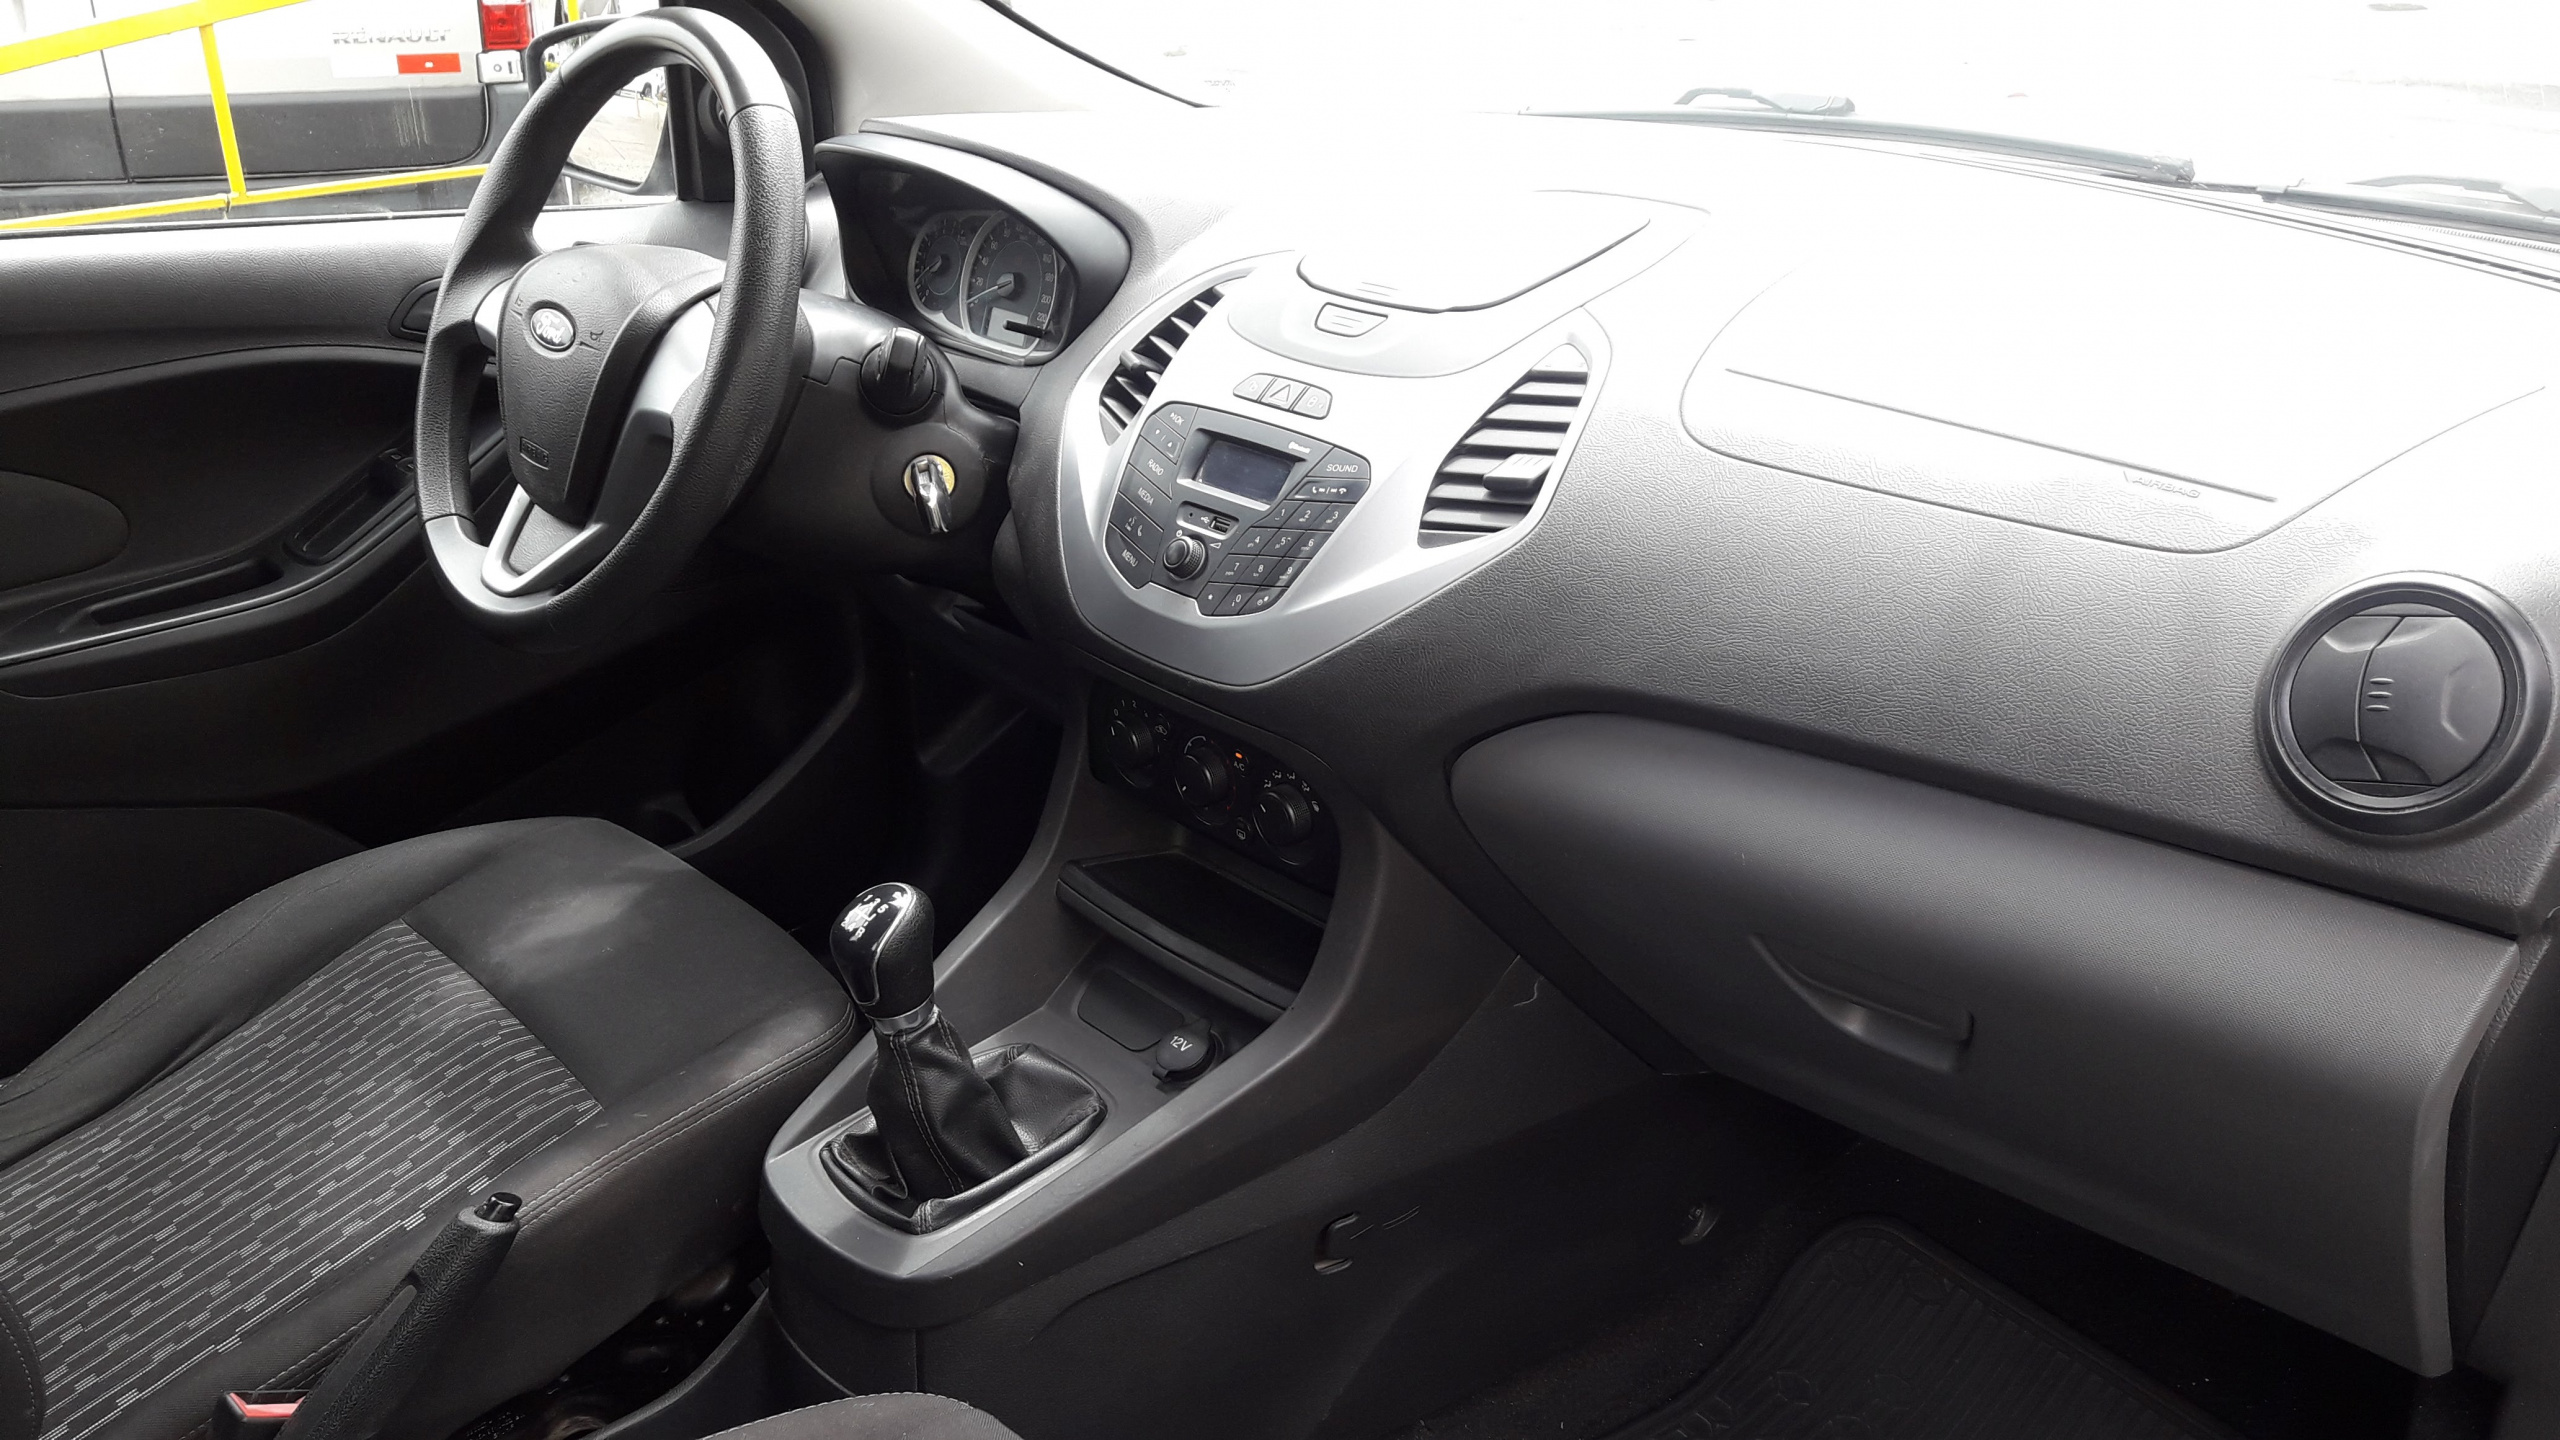 FORD KA KA HATCH SE 1.0 (FLEX)